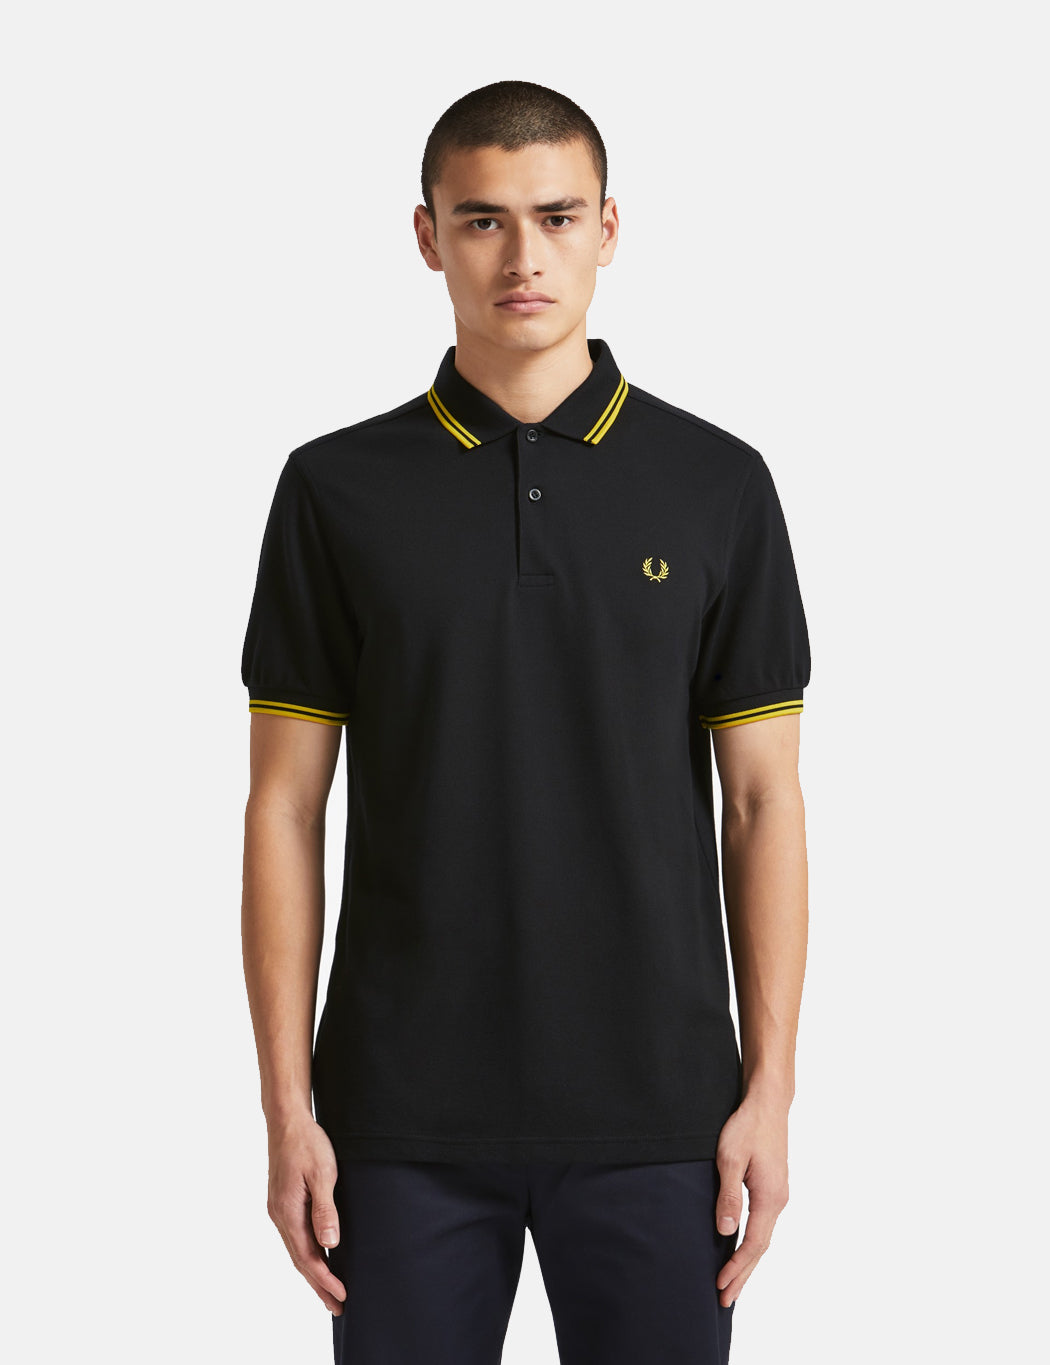 Fred Perry Twin Tipped Polo Shirt - Black/New Yellow | URBAN EXCESS.